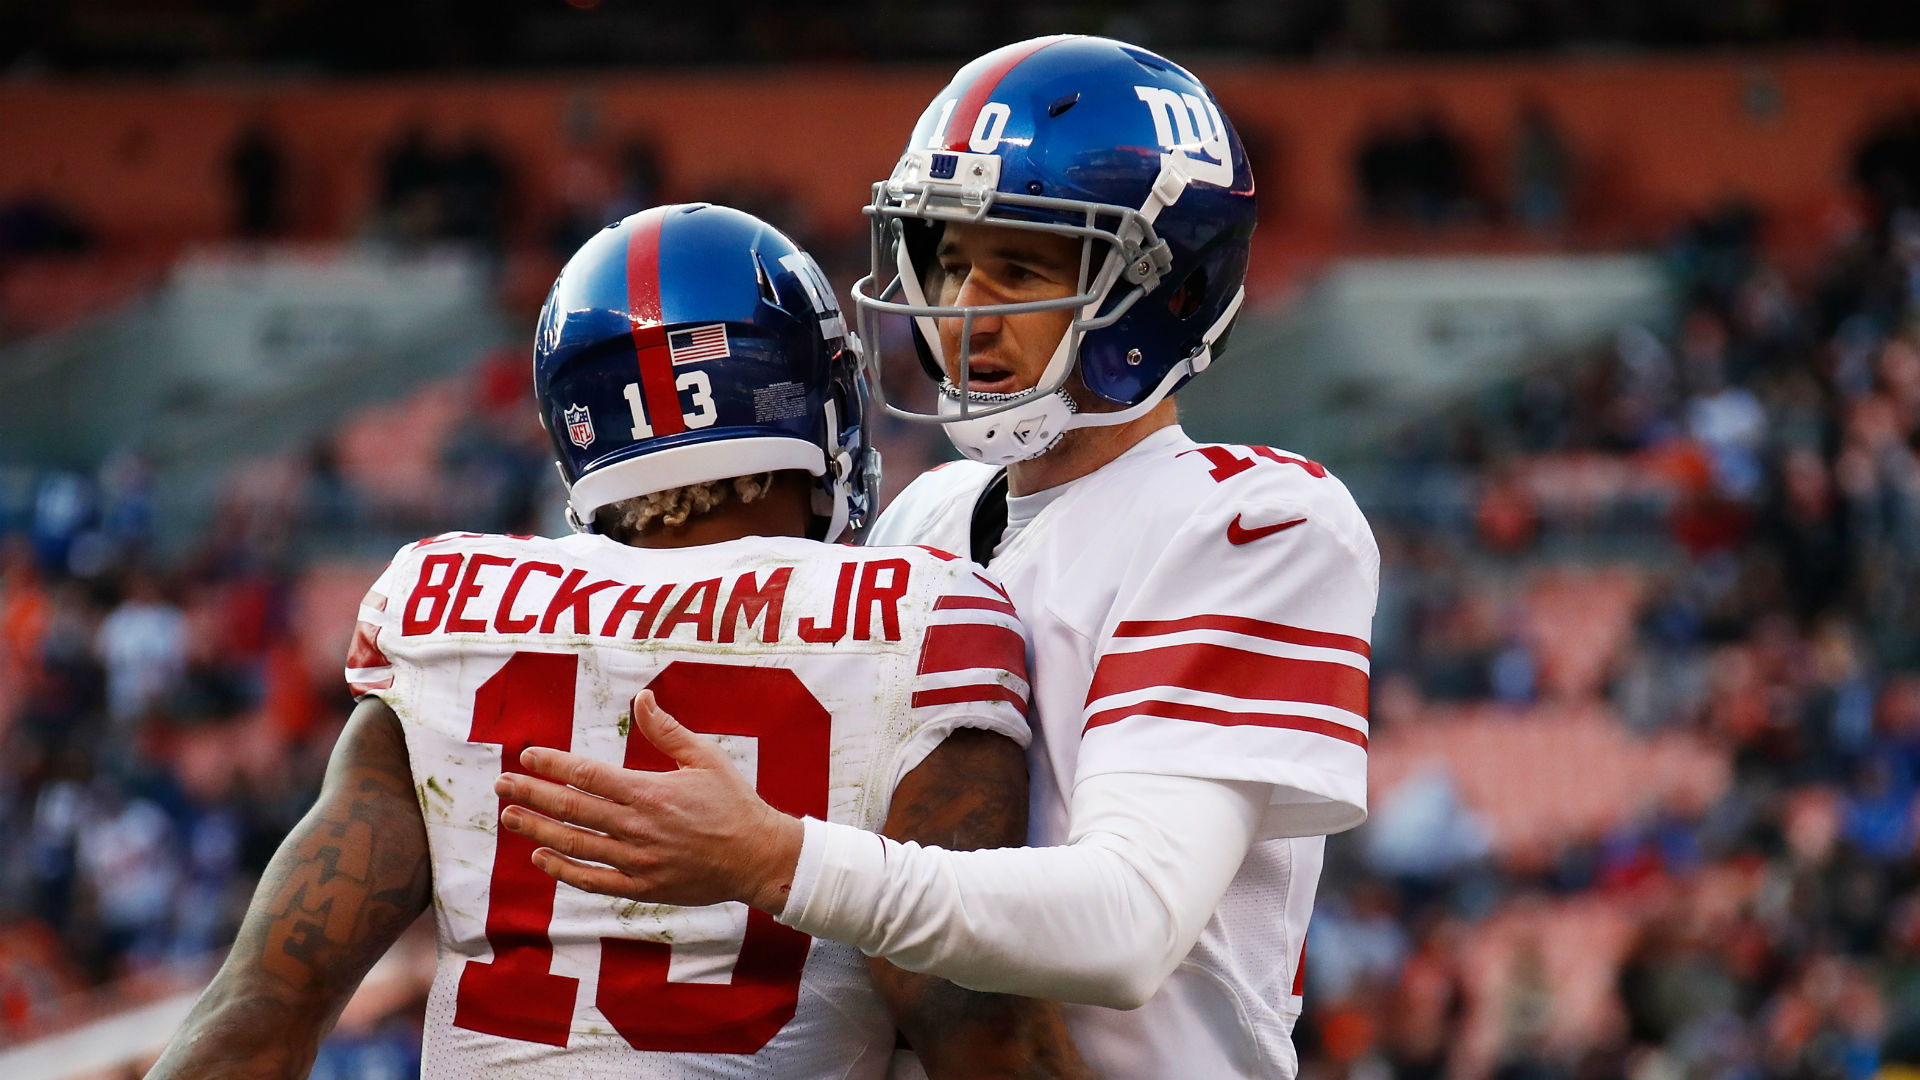 Giants vs. Buccaneers: Highlights, game tracker and more